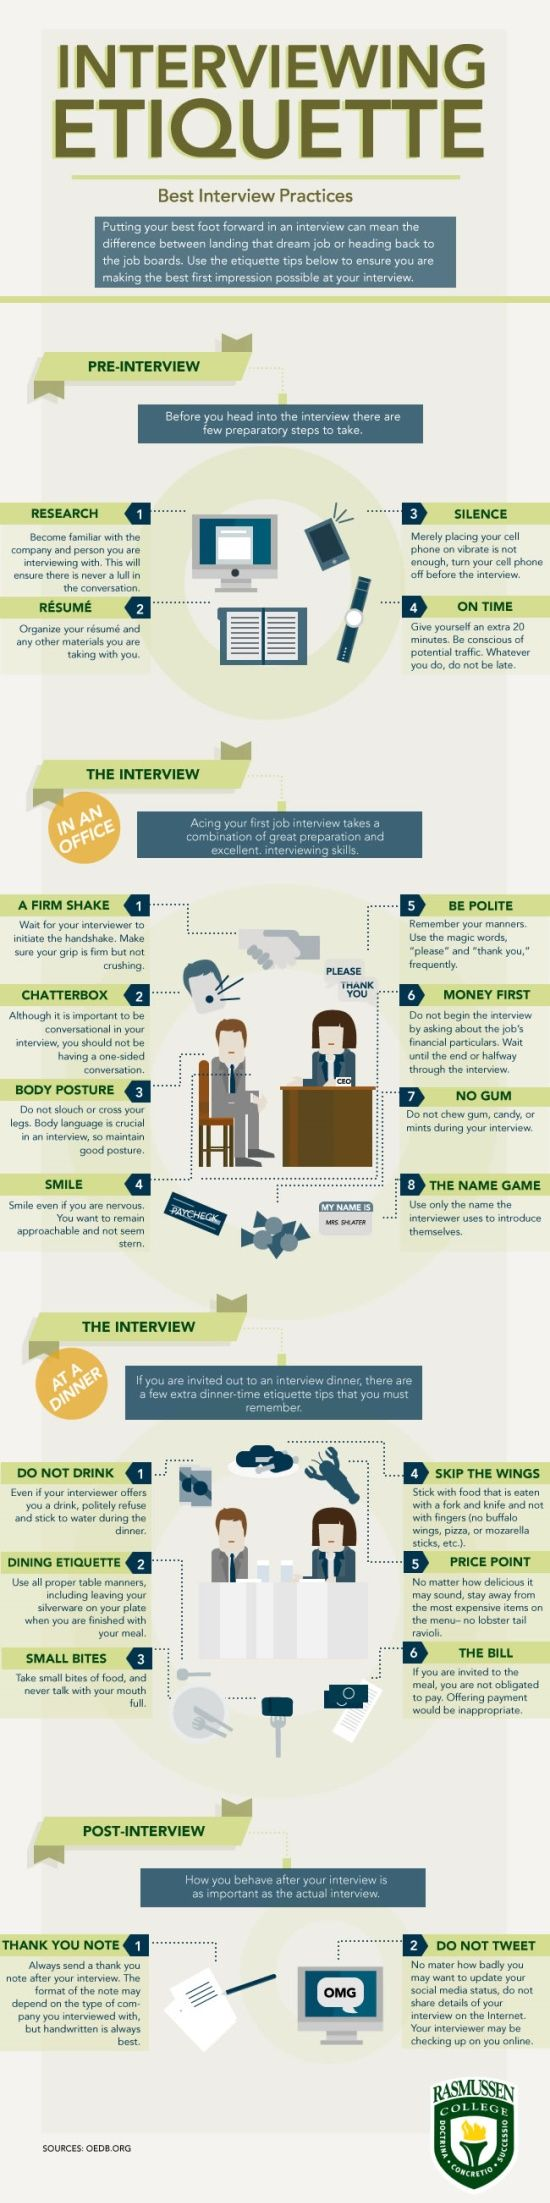 Interviewing Etiquette - Best Practices to Clear an Interview   Infographic